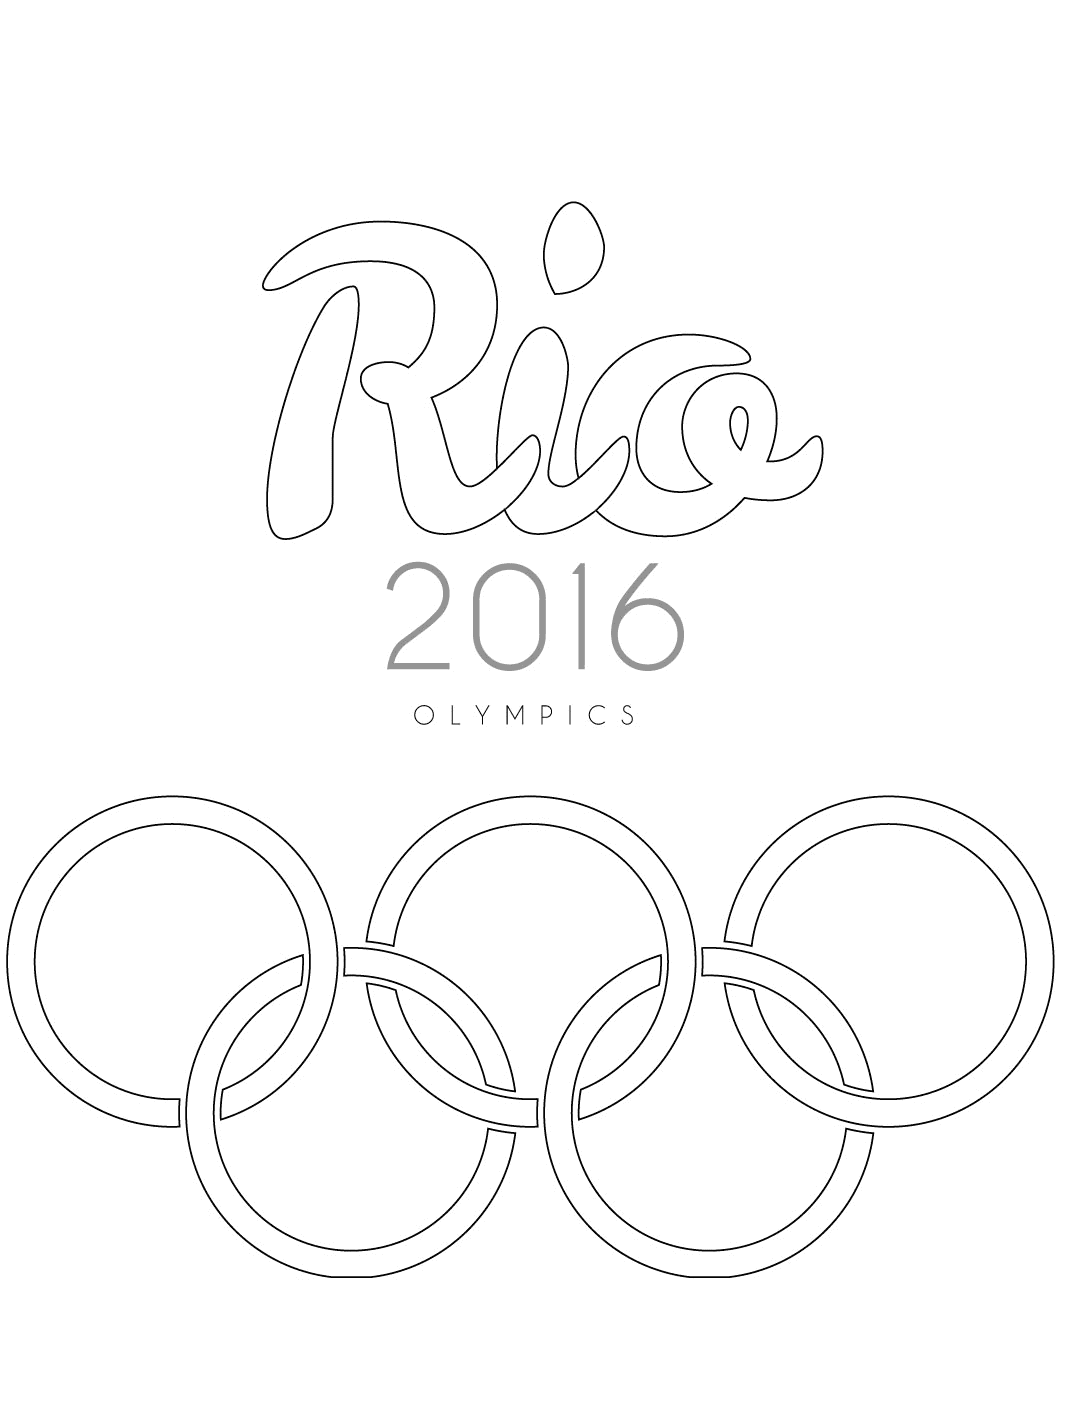 Rio Olympics Coloring Page